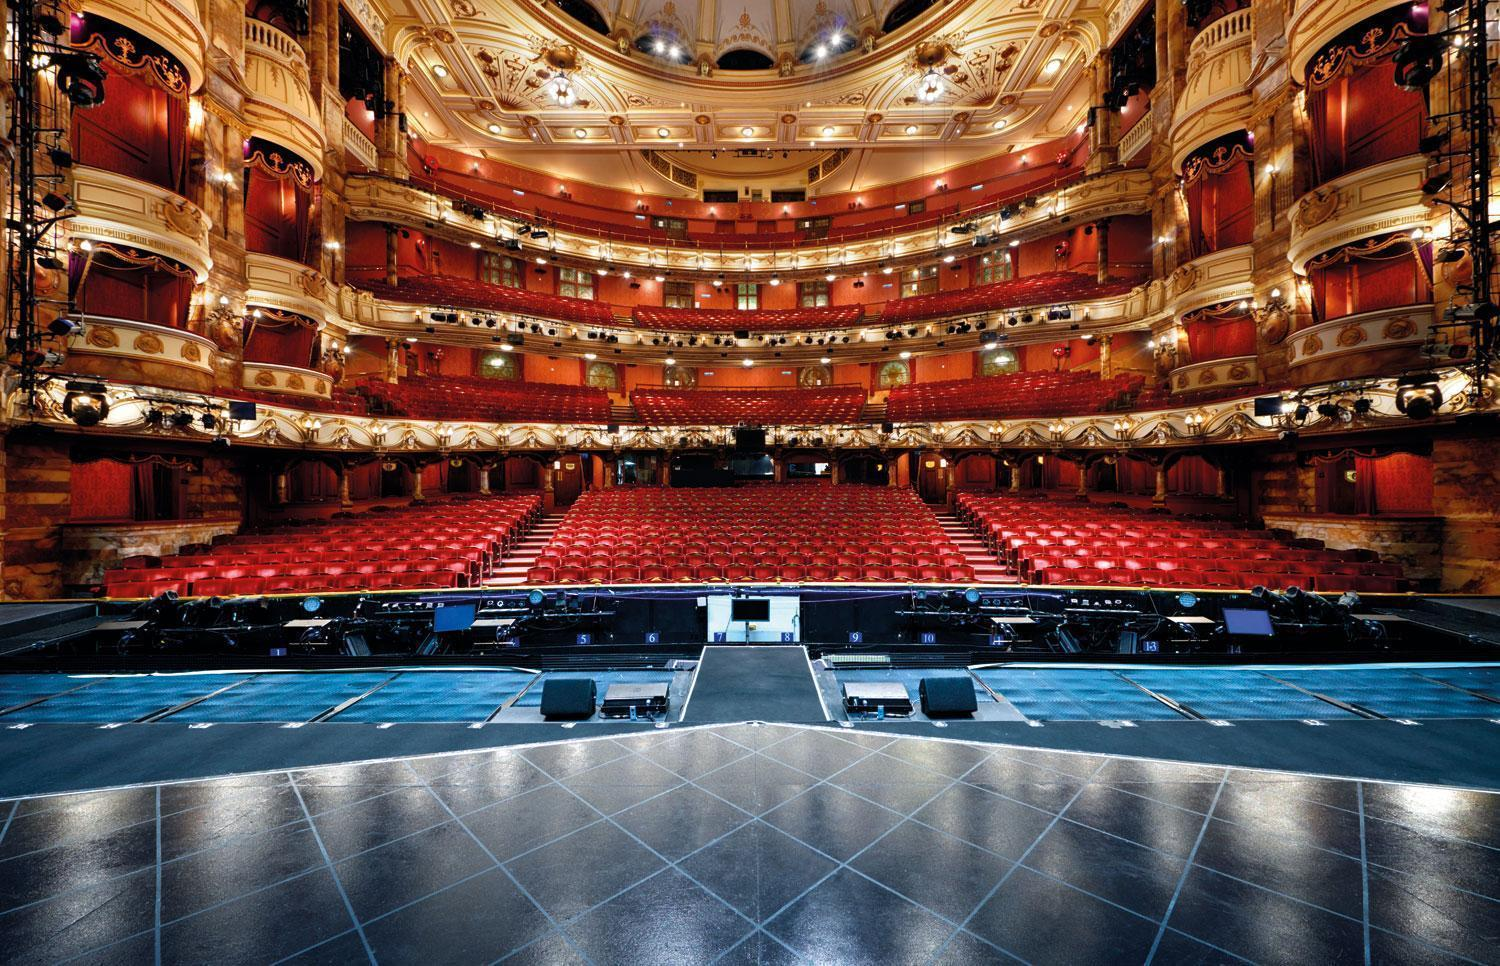 London Theatres A New Book Shares The Secrets Of London S